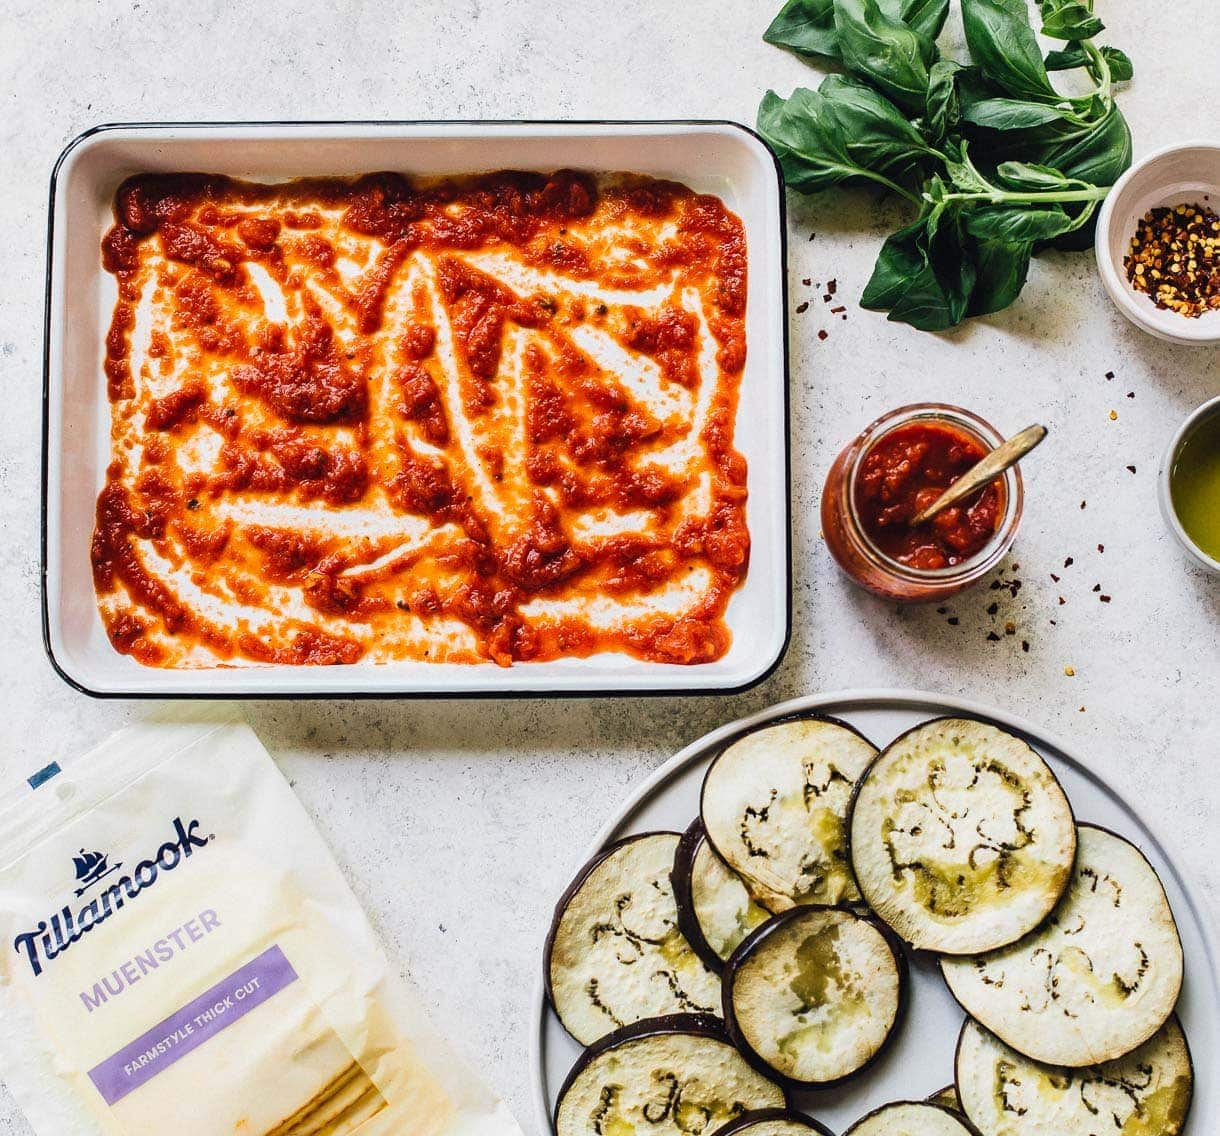 Ingredients for Cheesy Baked Eggplant Slices